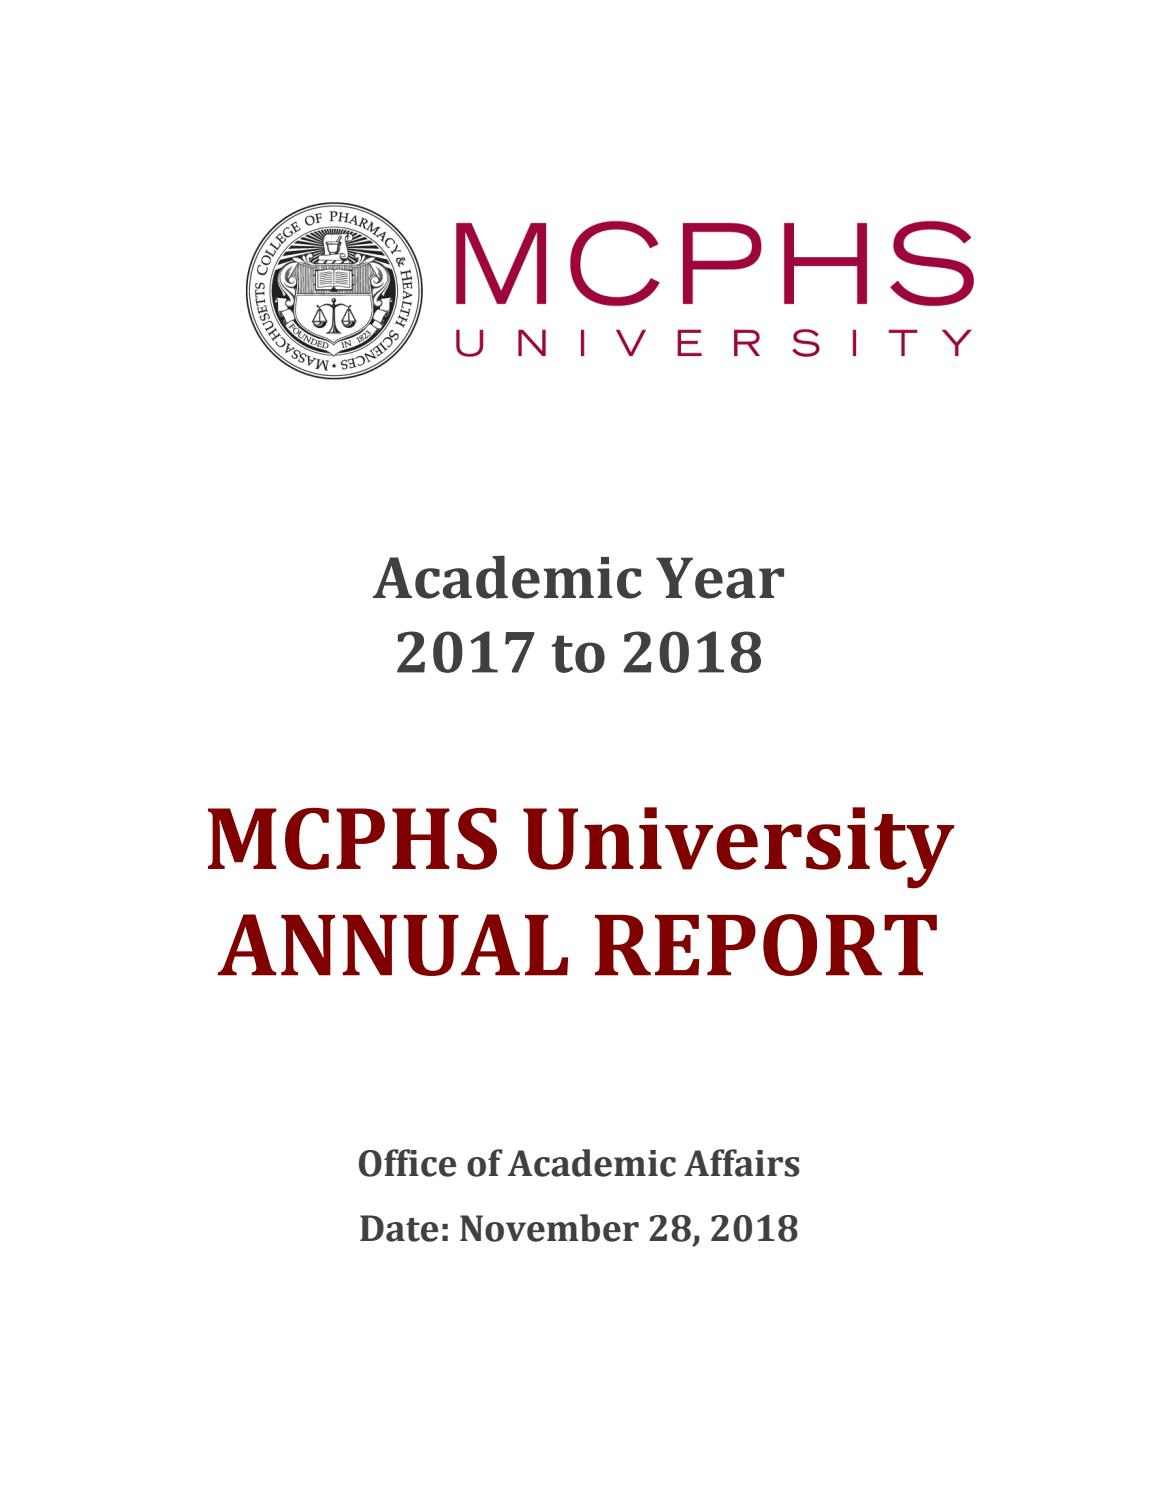 Mcphs University Annual Reportmassachusetts College Of Throughout Wiliam & Mary 2021/2020 Calendar